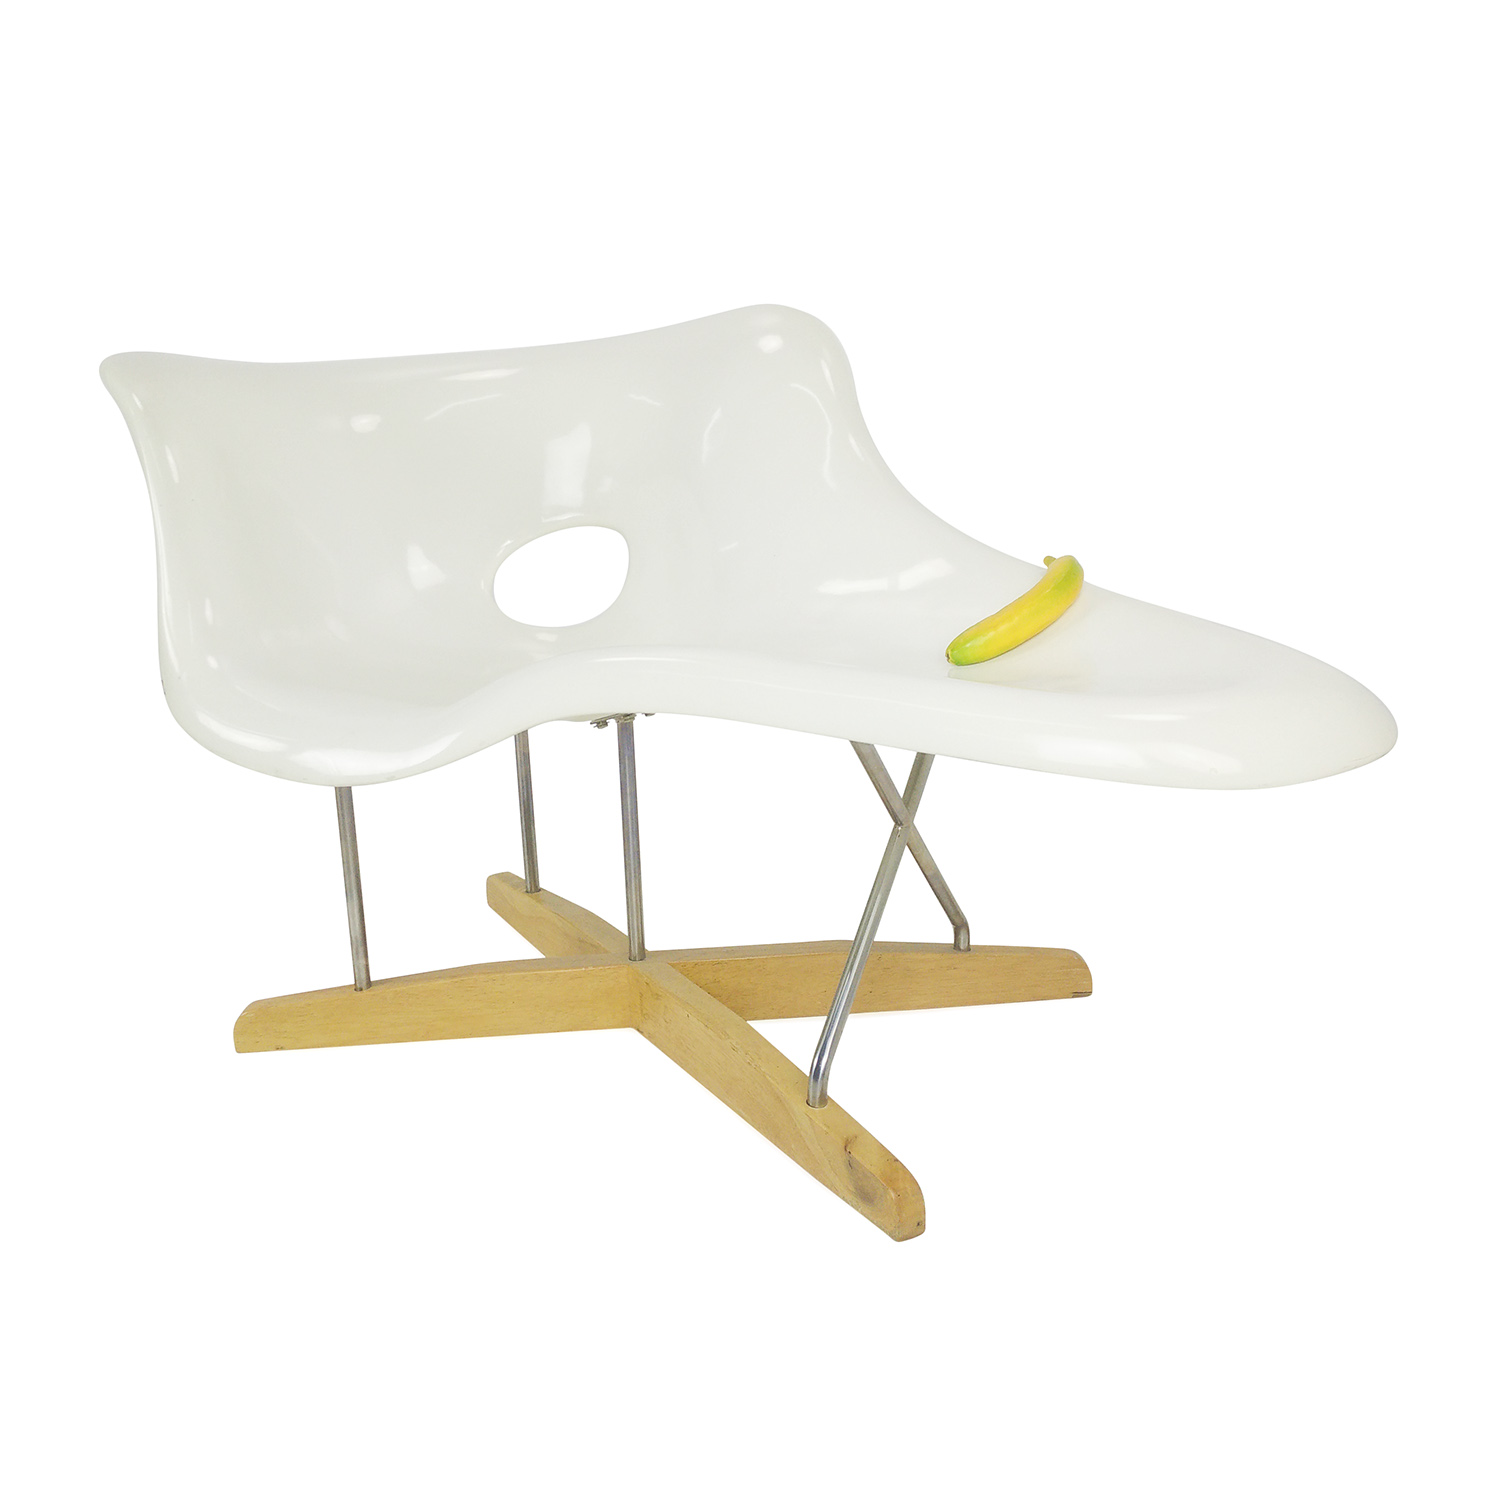 Best eames chair replica replica eames rar rocking chair for Chaises rar charles eames